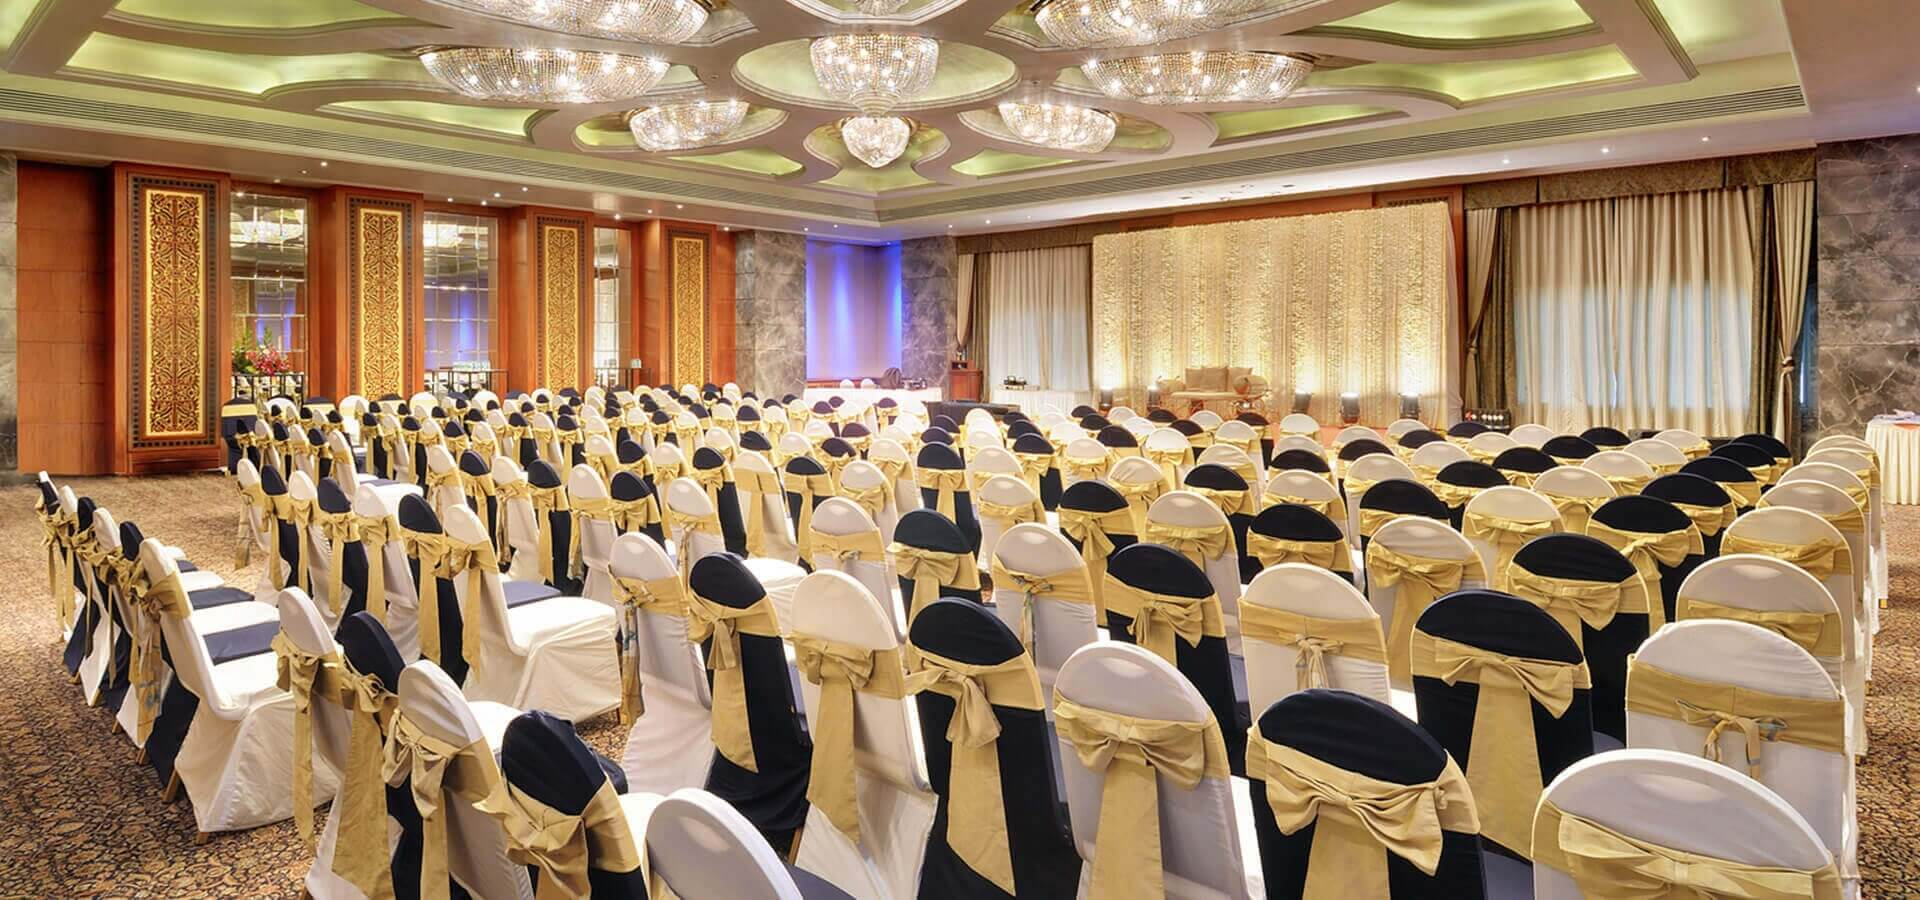 beachfront banquet halls in Mumbai, sea facing wedding venues in Mumbai, best banquet halls in Juhu, meeting room in Juhu